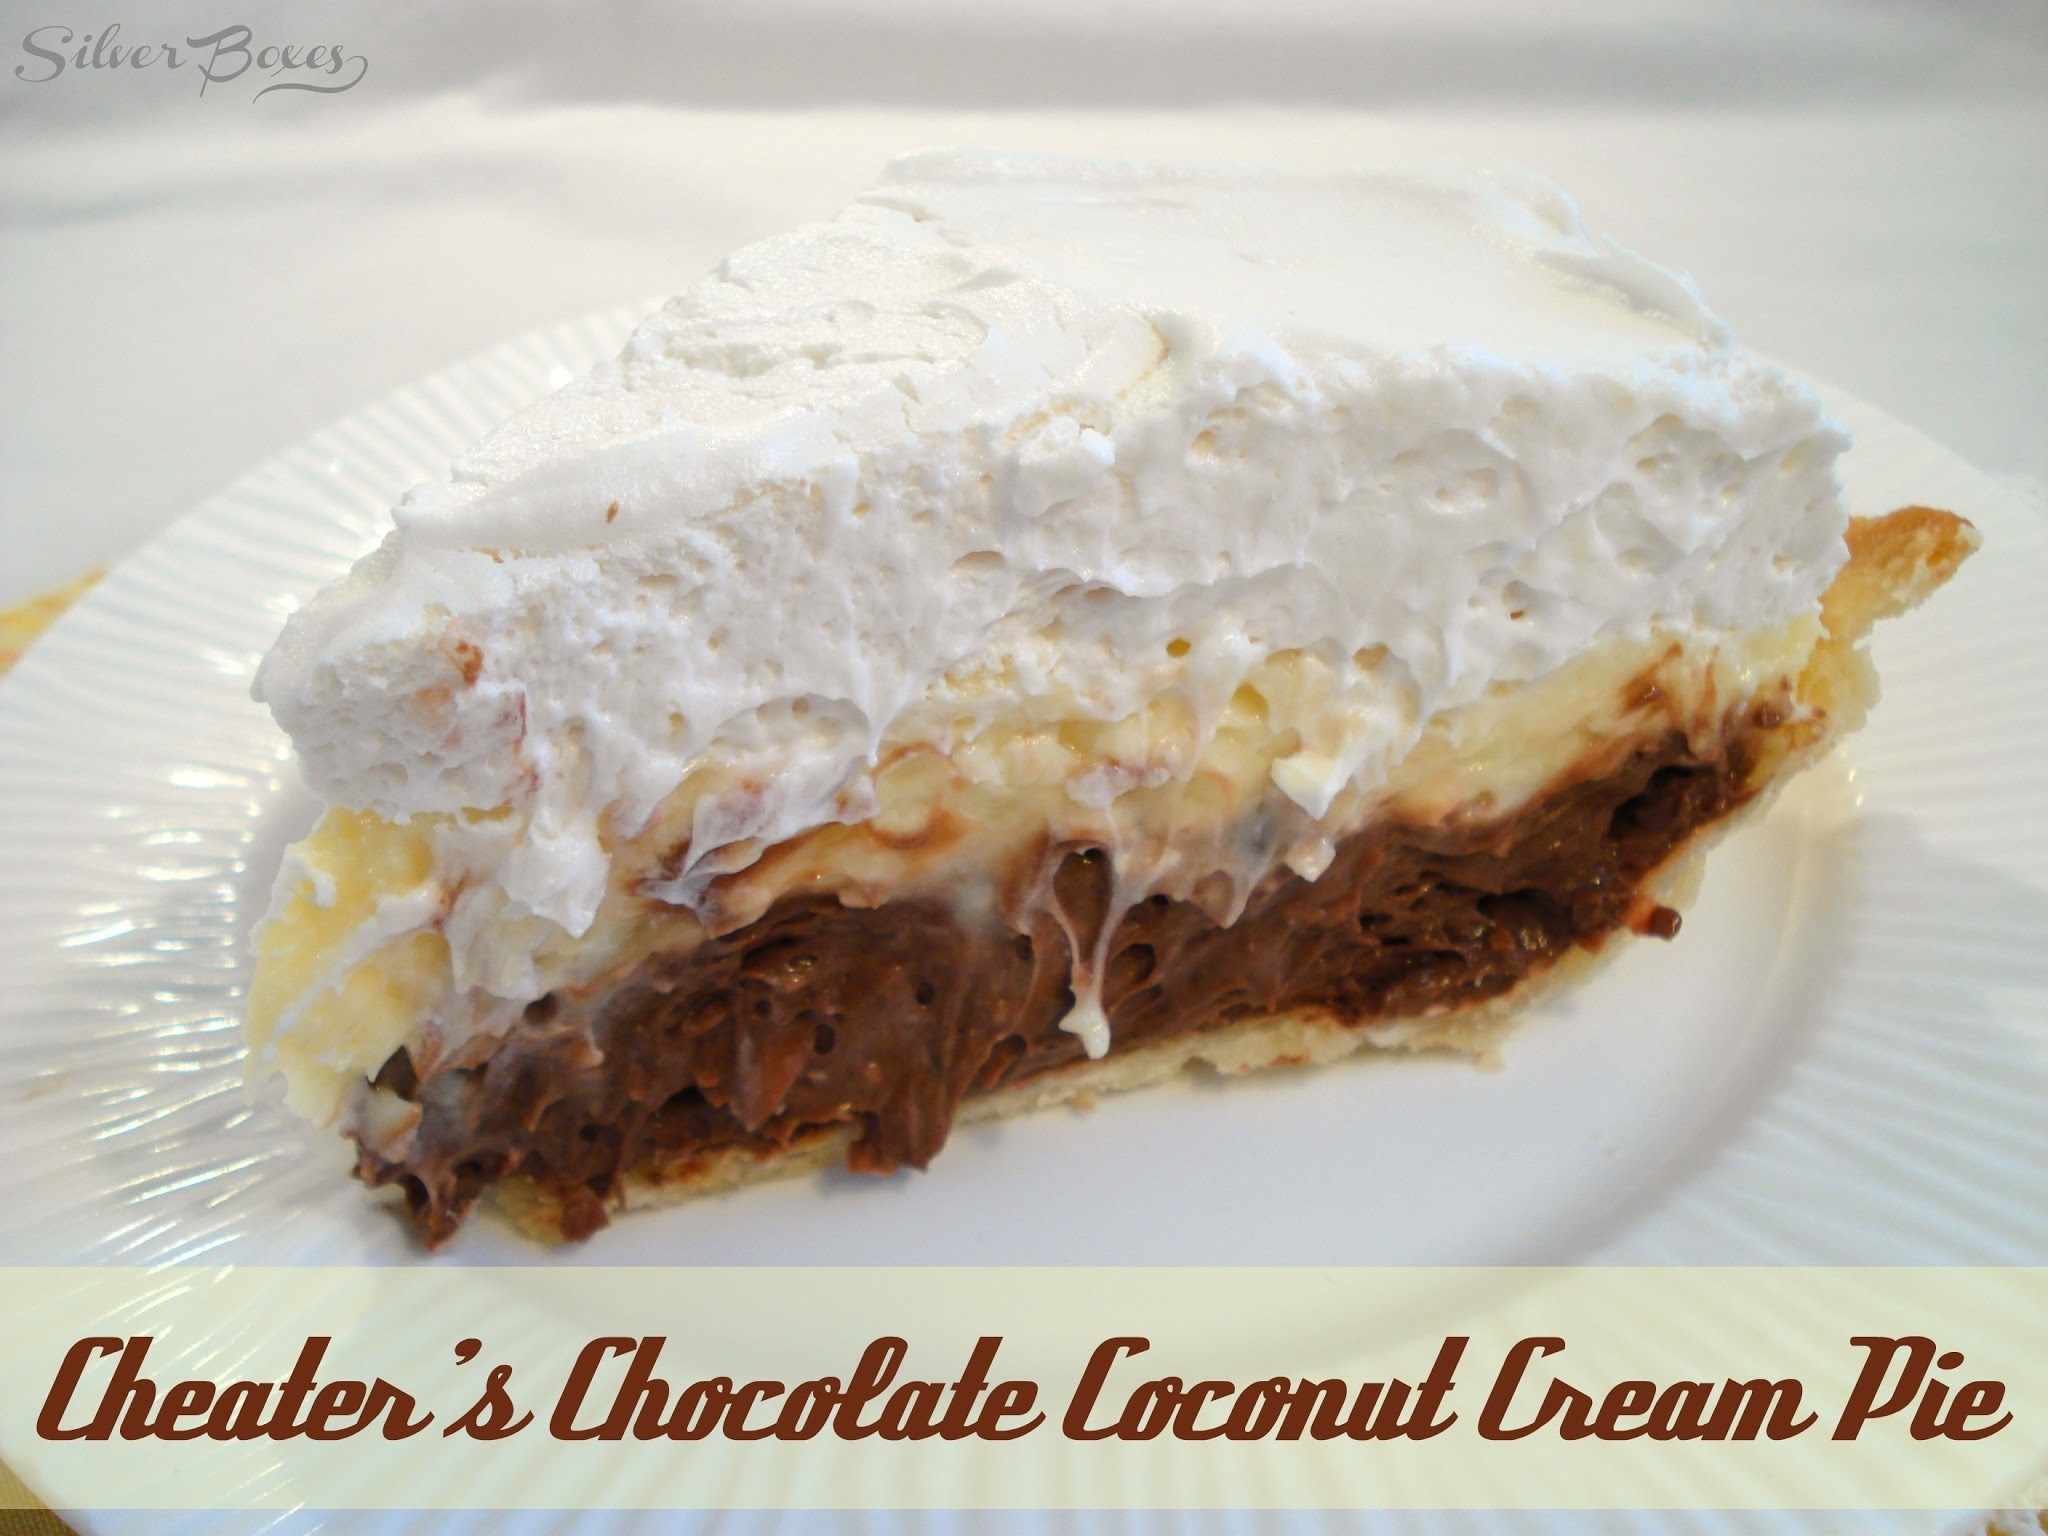 Cheater's Chocolate Coconut Cream Pie